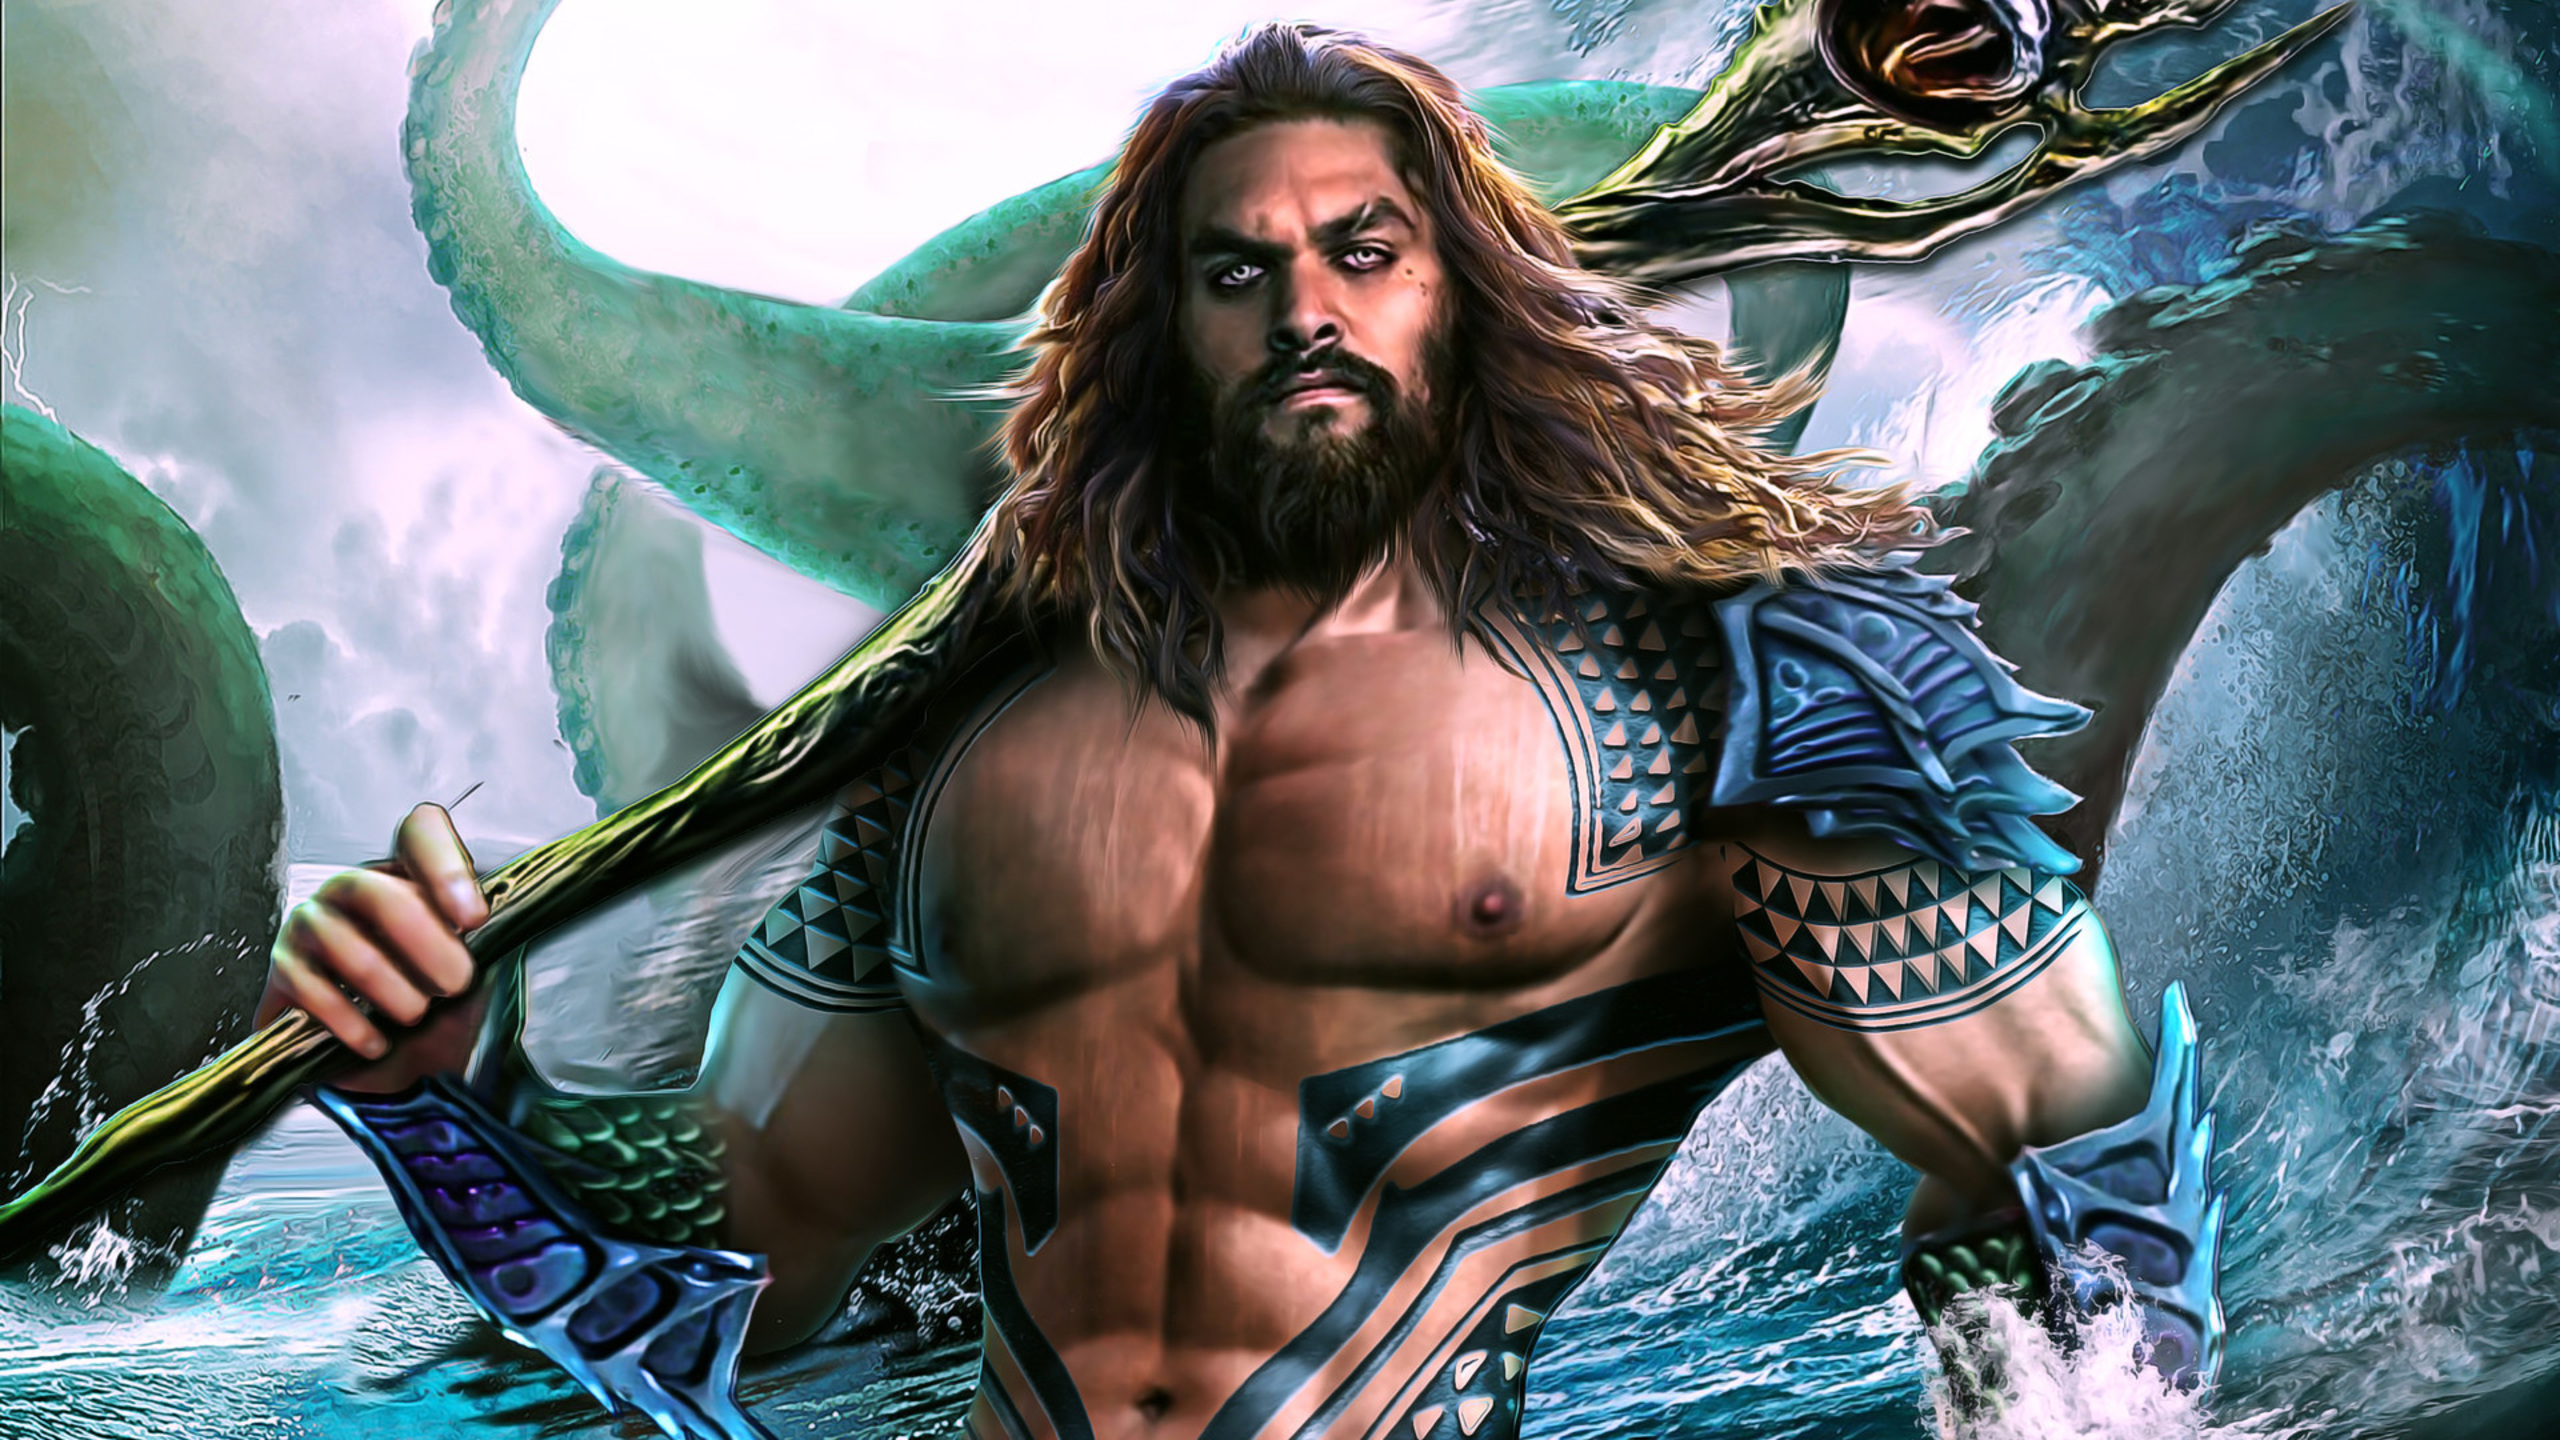 aqua man dc comics movie art design 4k hd pc wallpaper